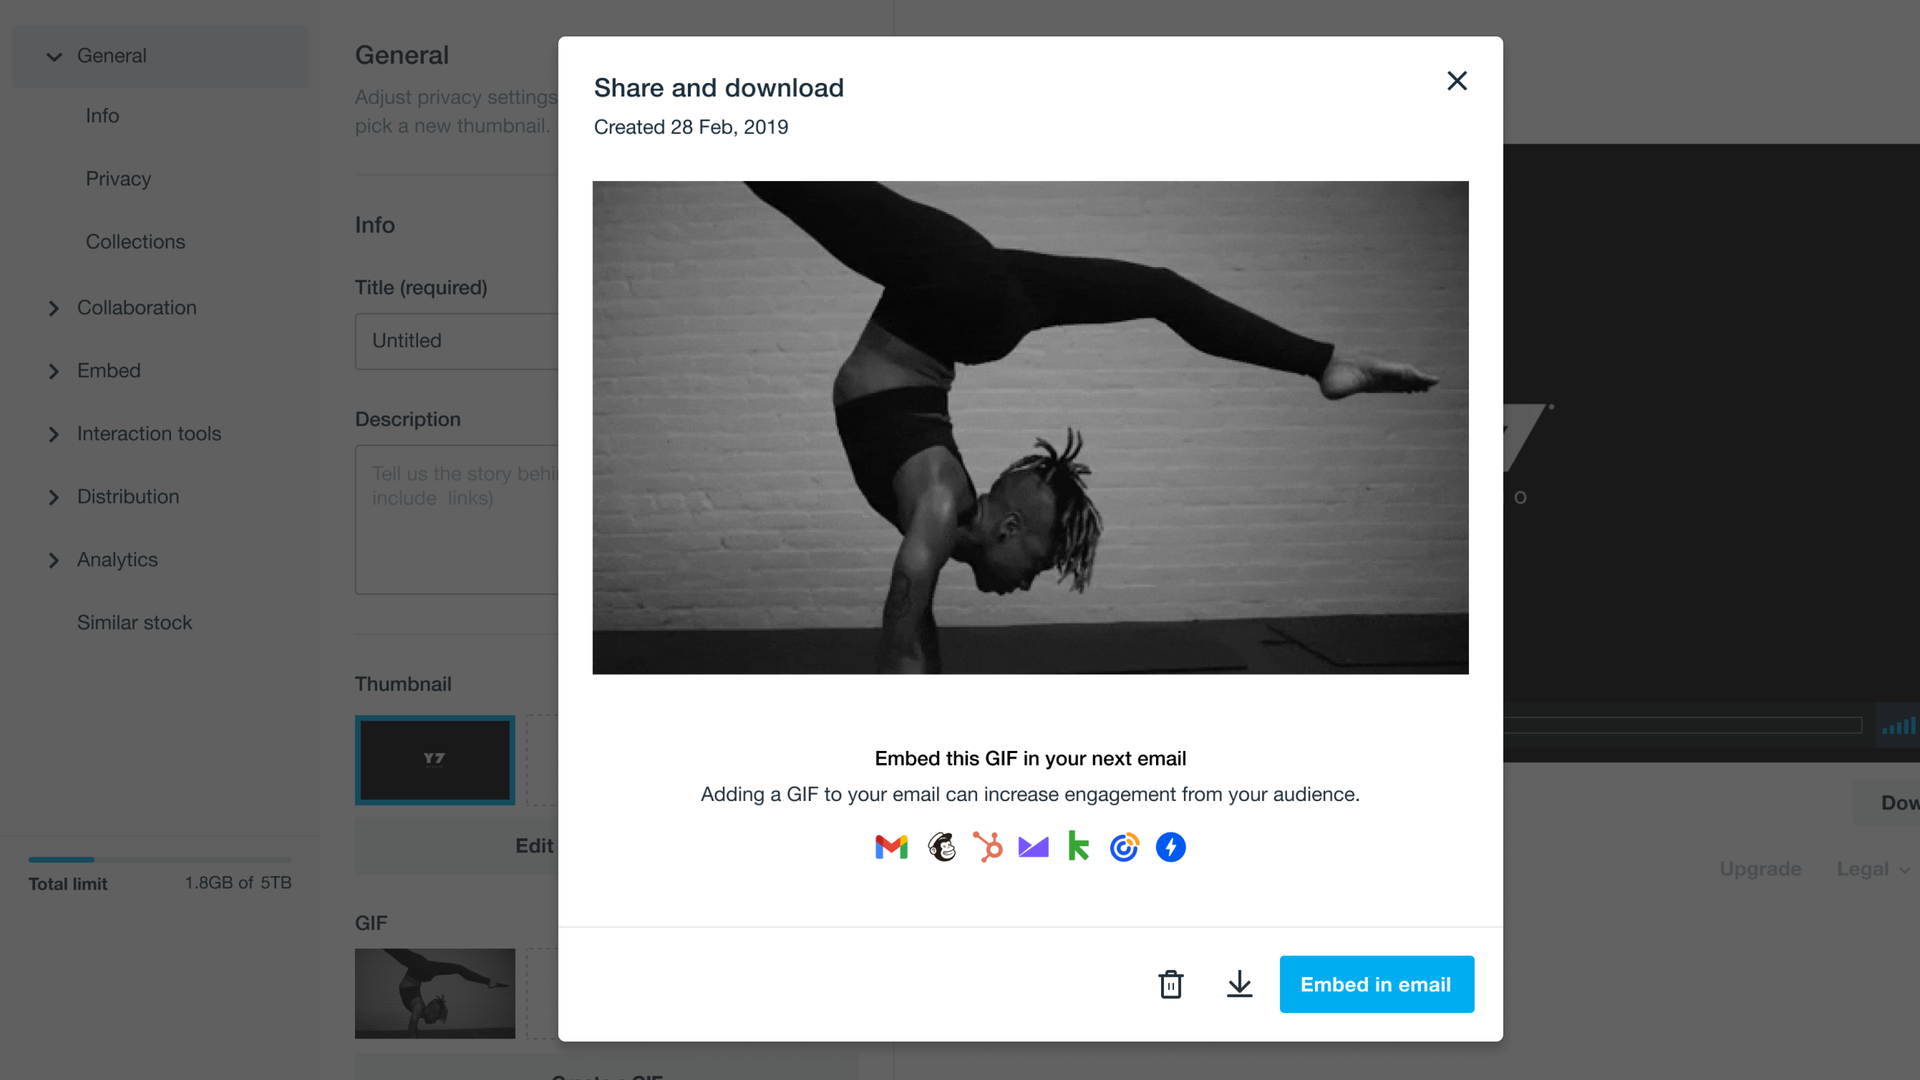 Vimeo GIF download and embed page